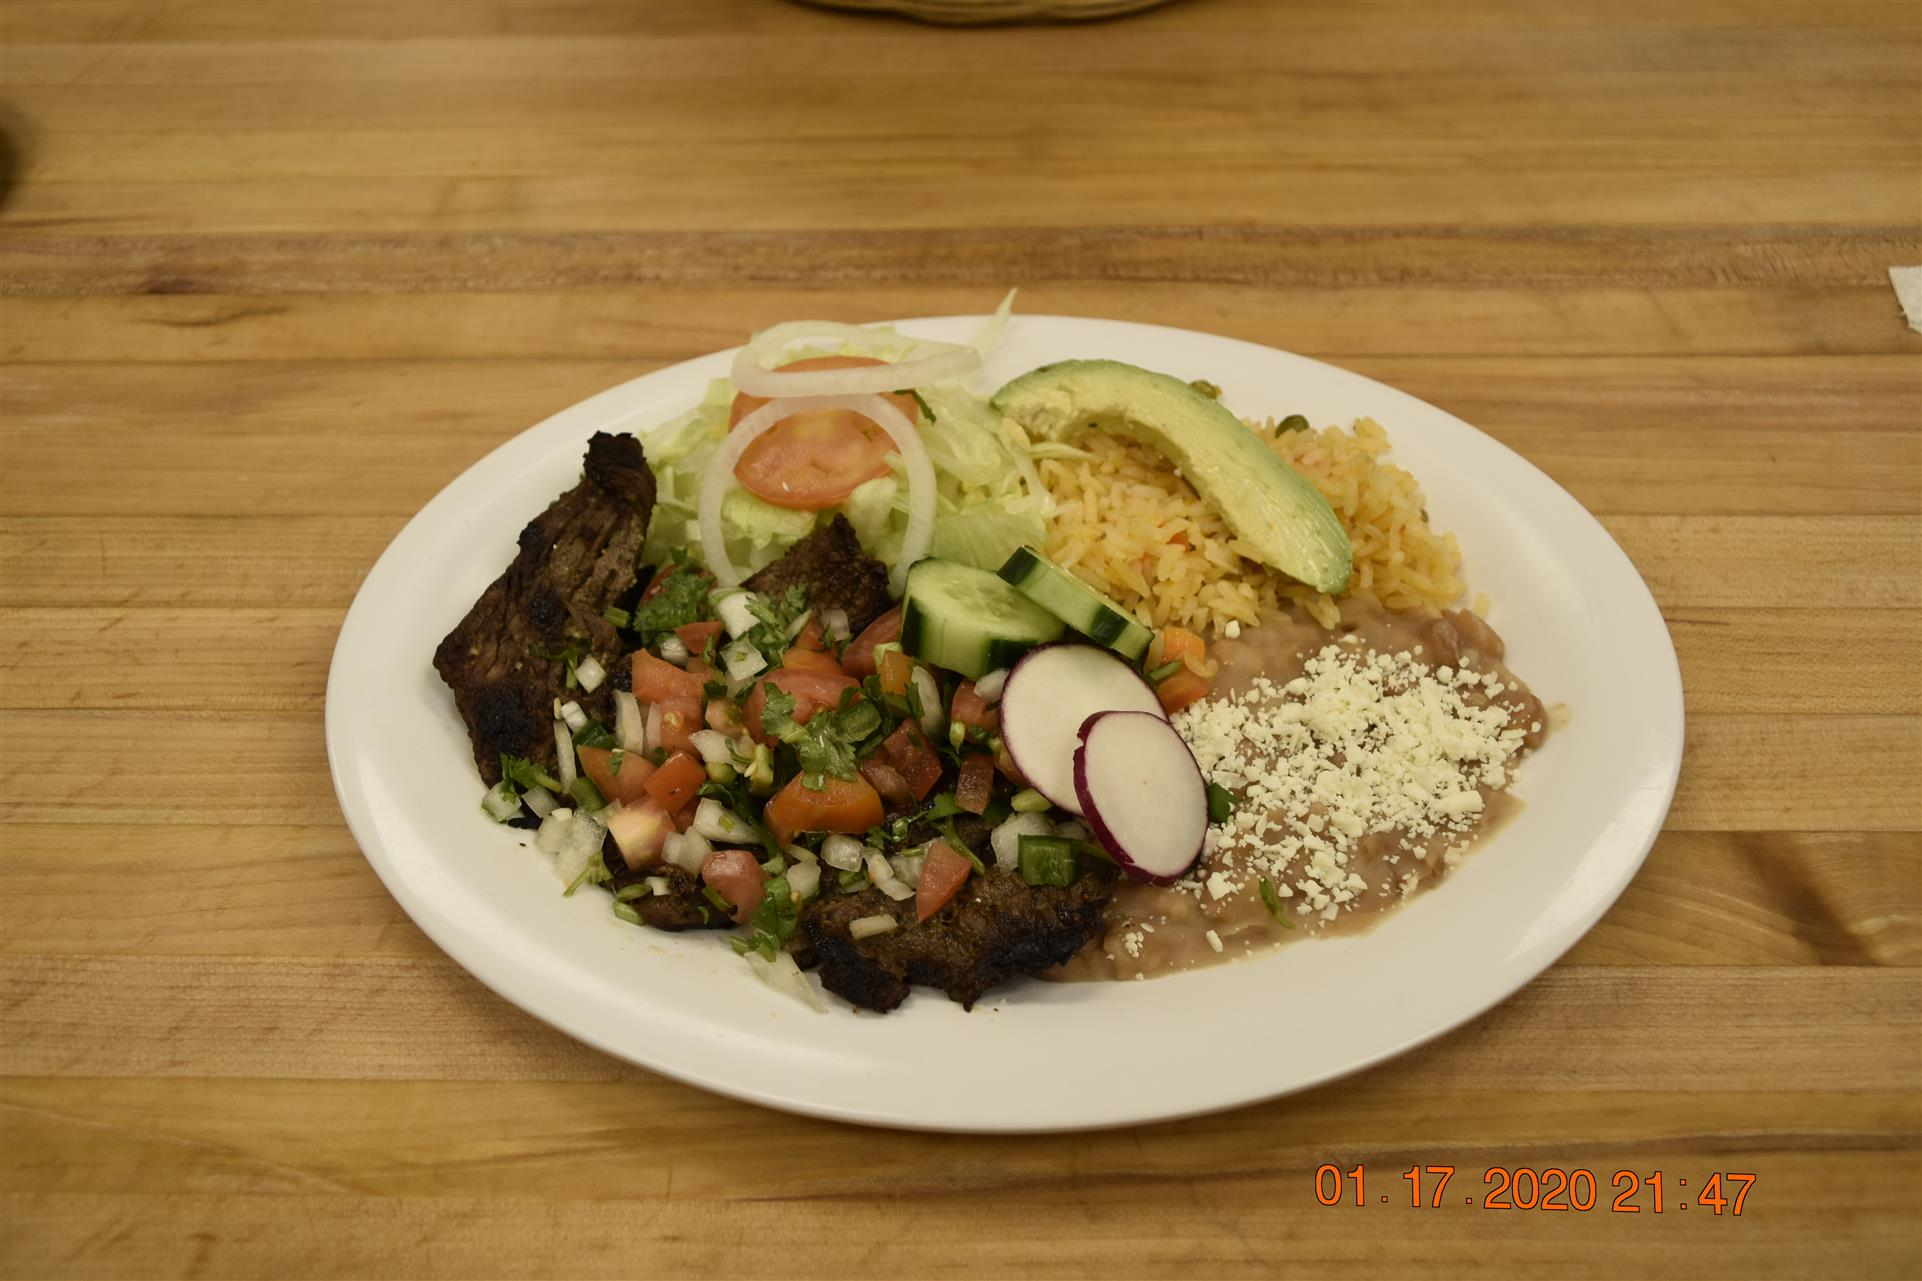 meat dish with side of rice, beans and salad